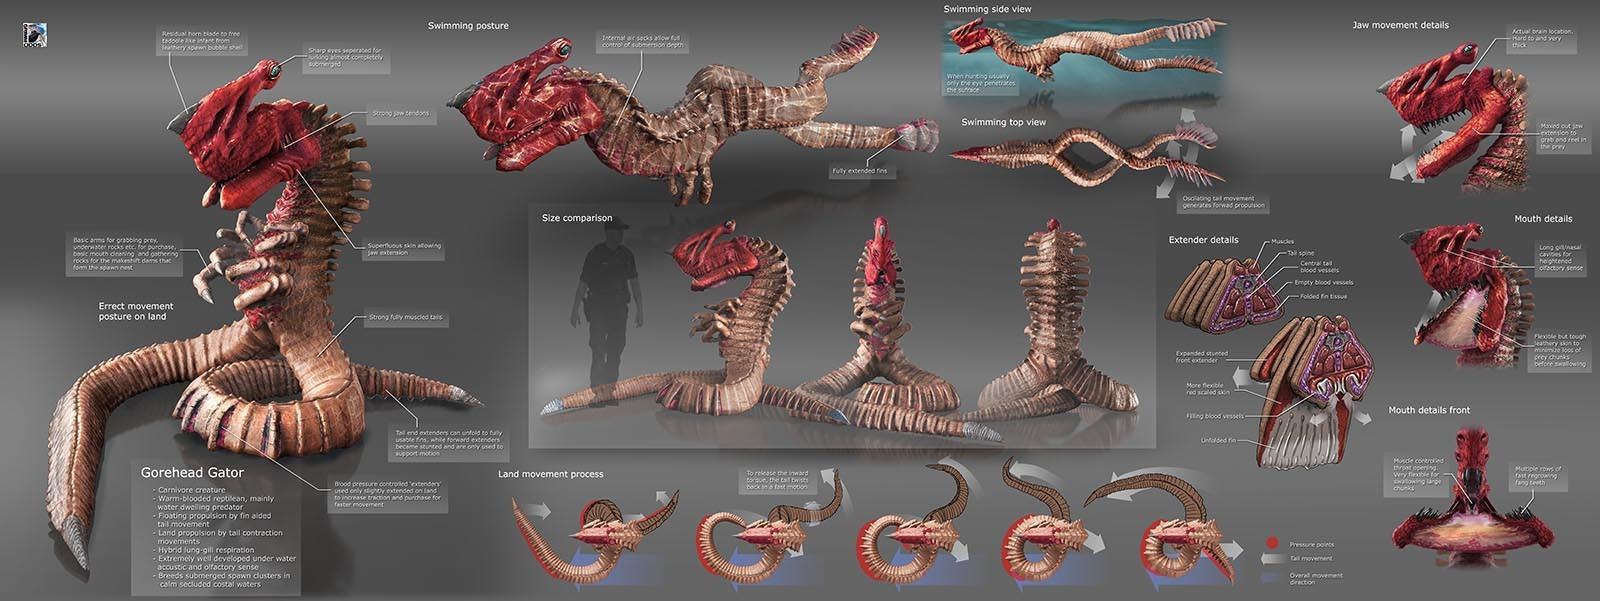 Grimm Odds - Gore-Head Gator - Annotations